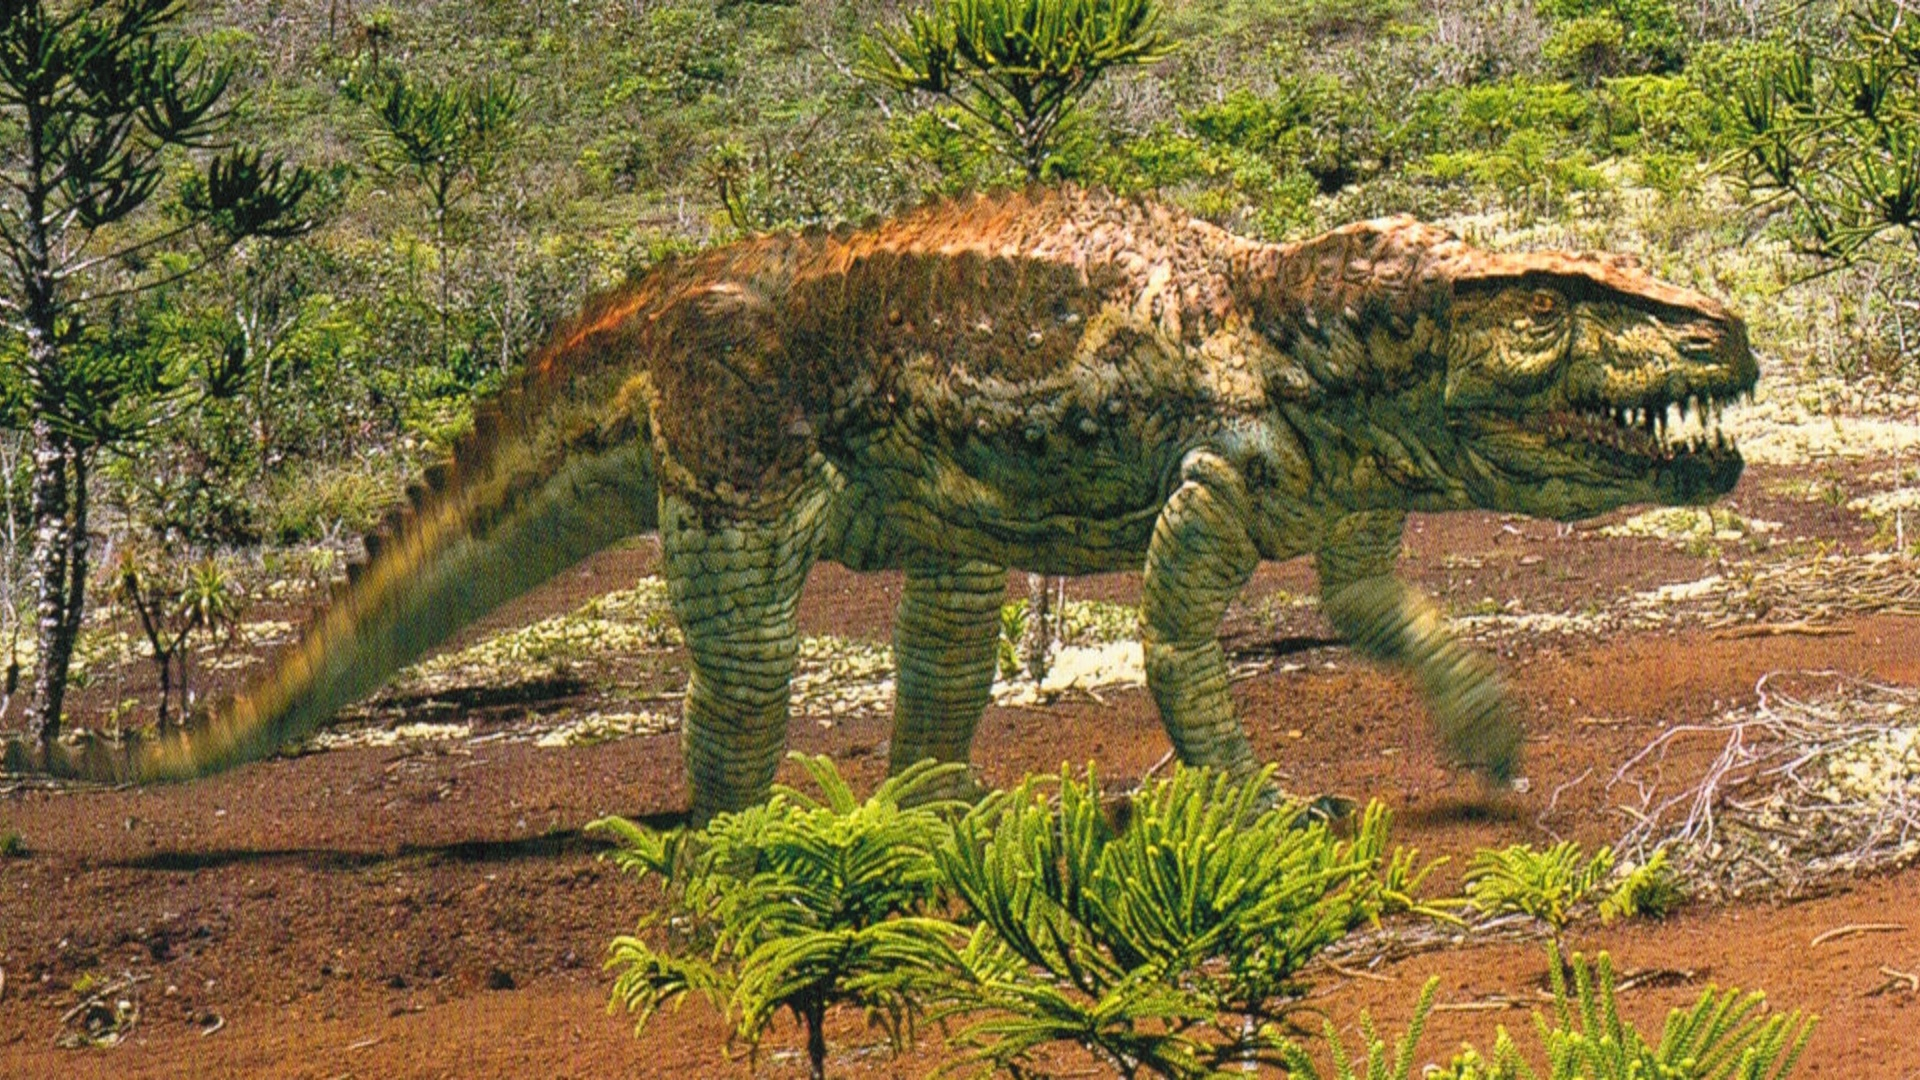 Postosuchus | Walking With Wikis